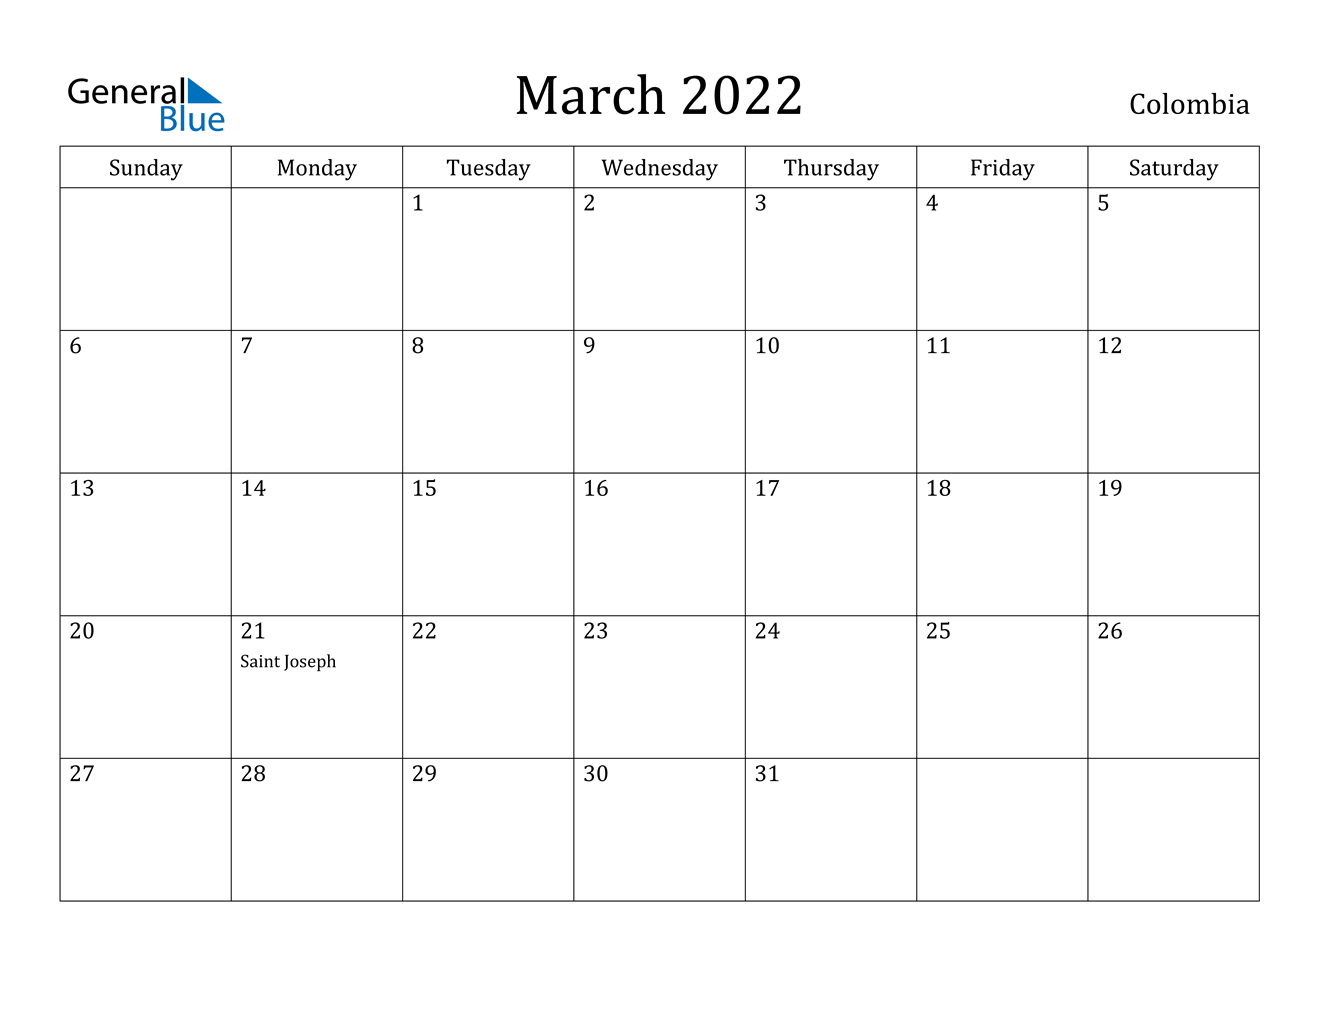 March 2022 Calendar - Colombia intended for March 2022 Calendar Template